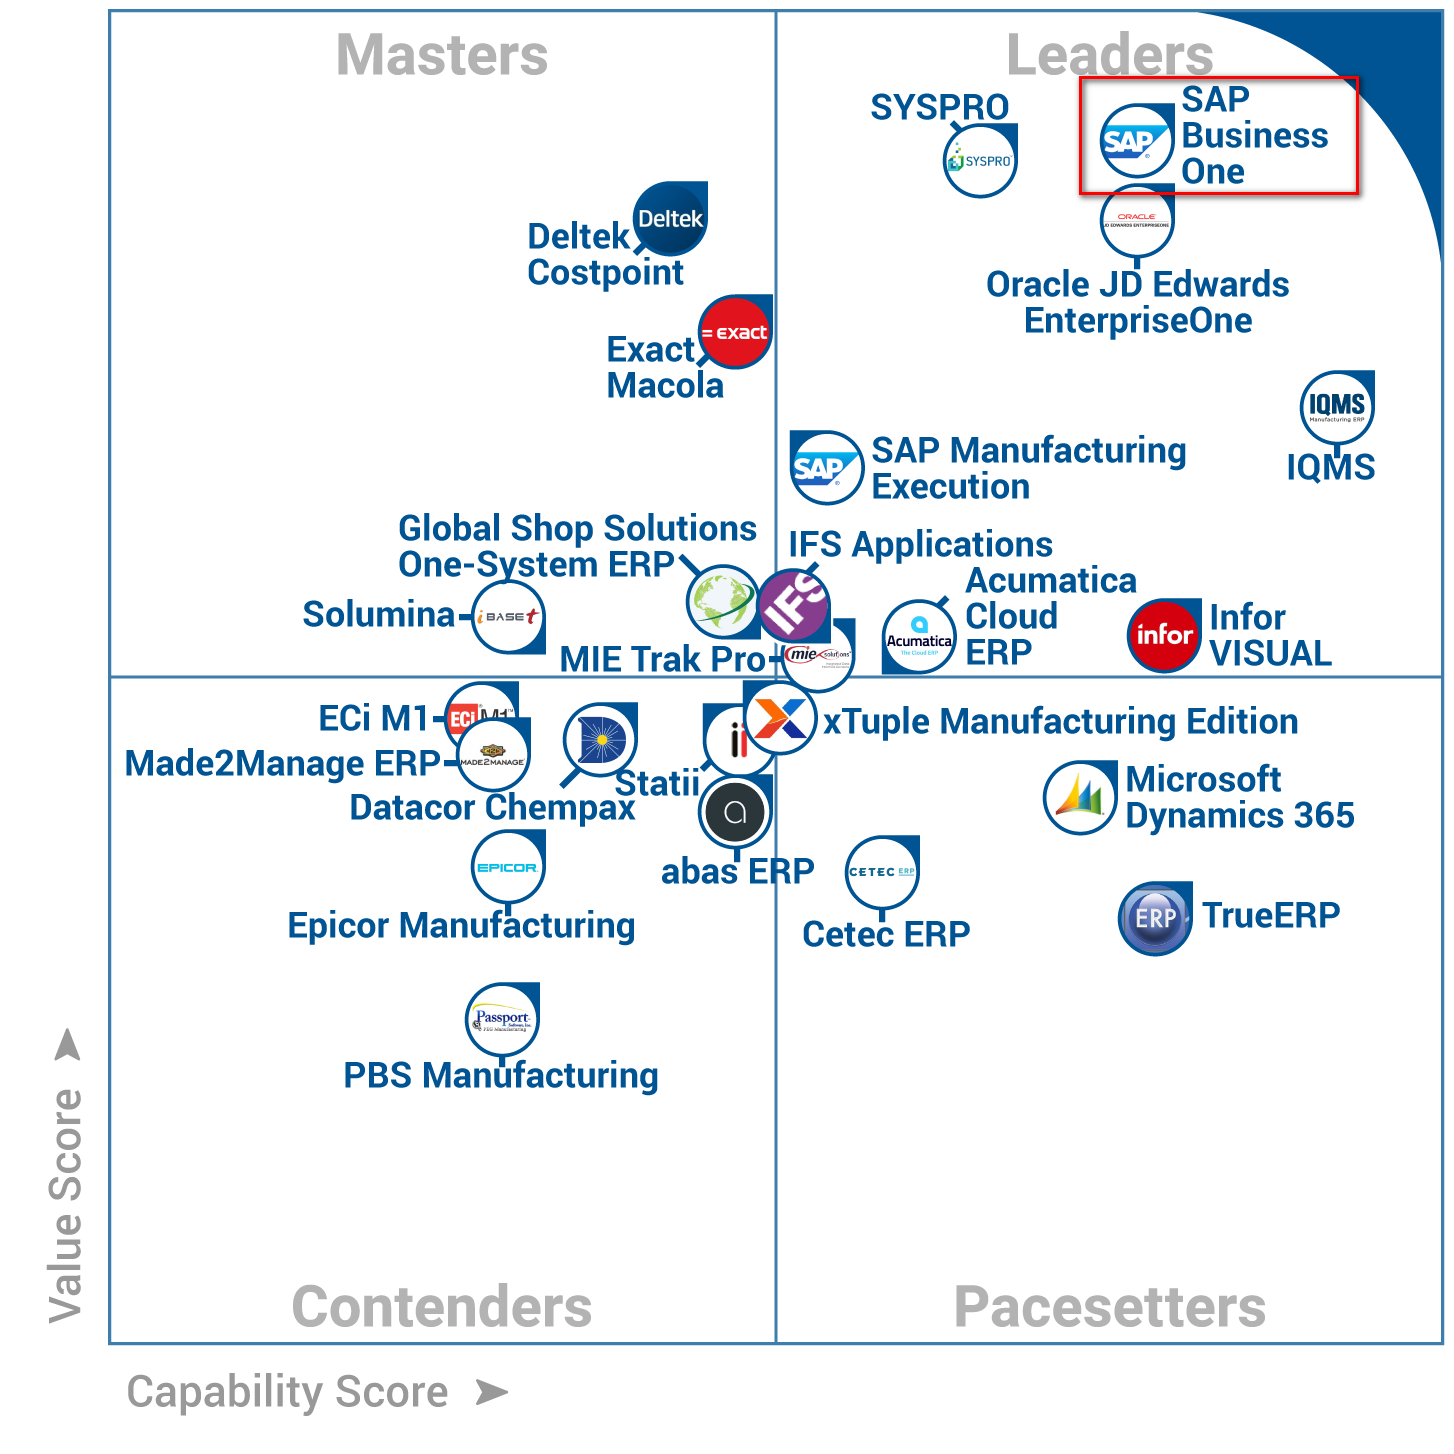 SAP Business One listed at #1 Frontrunner for Manufacturing Products by Gartner.